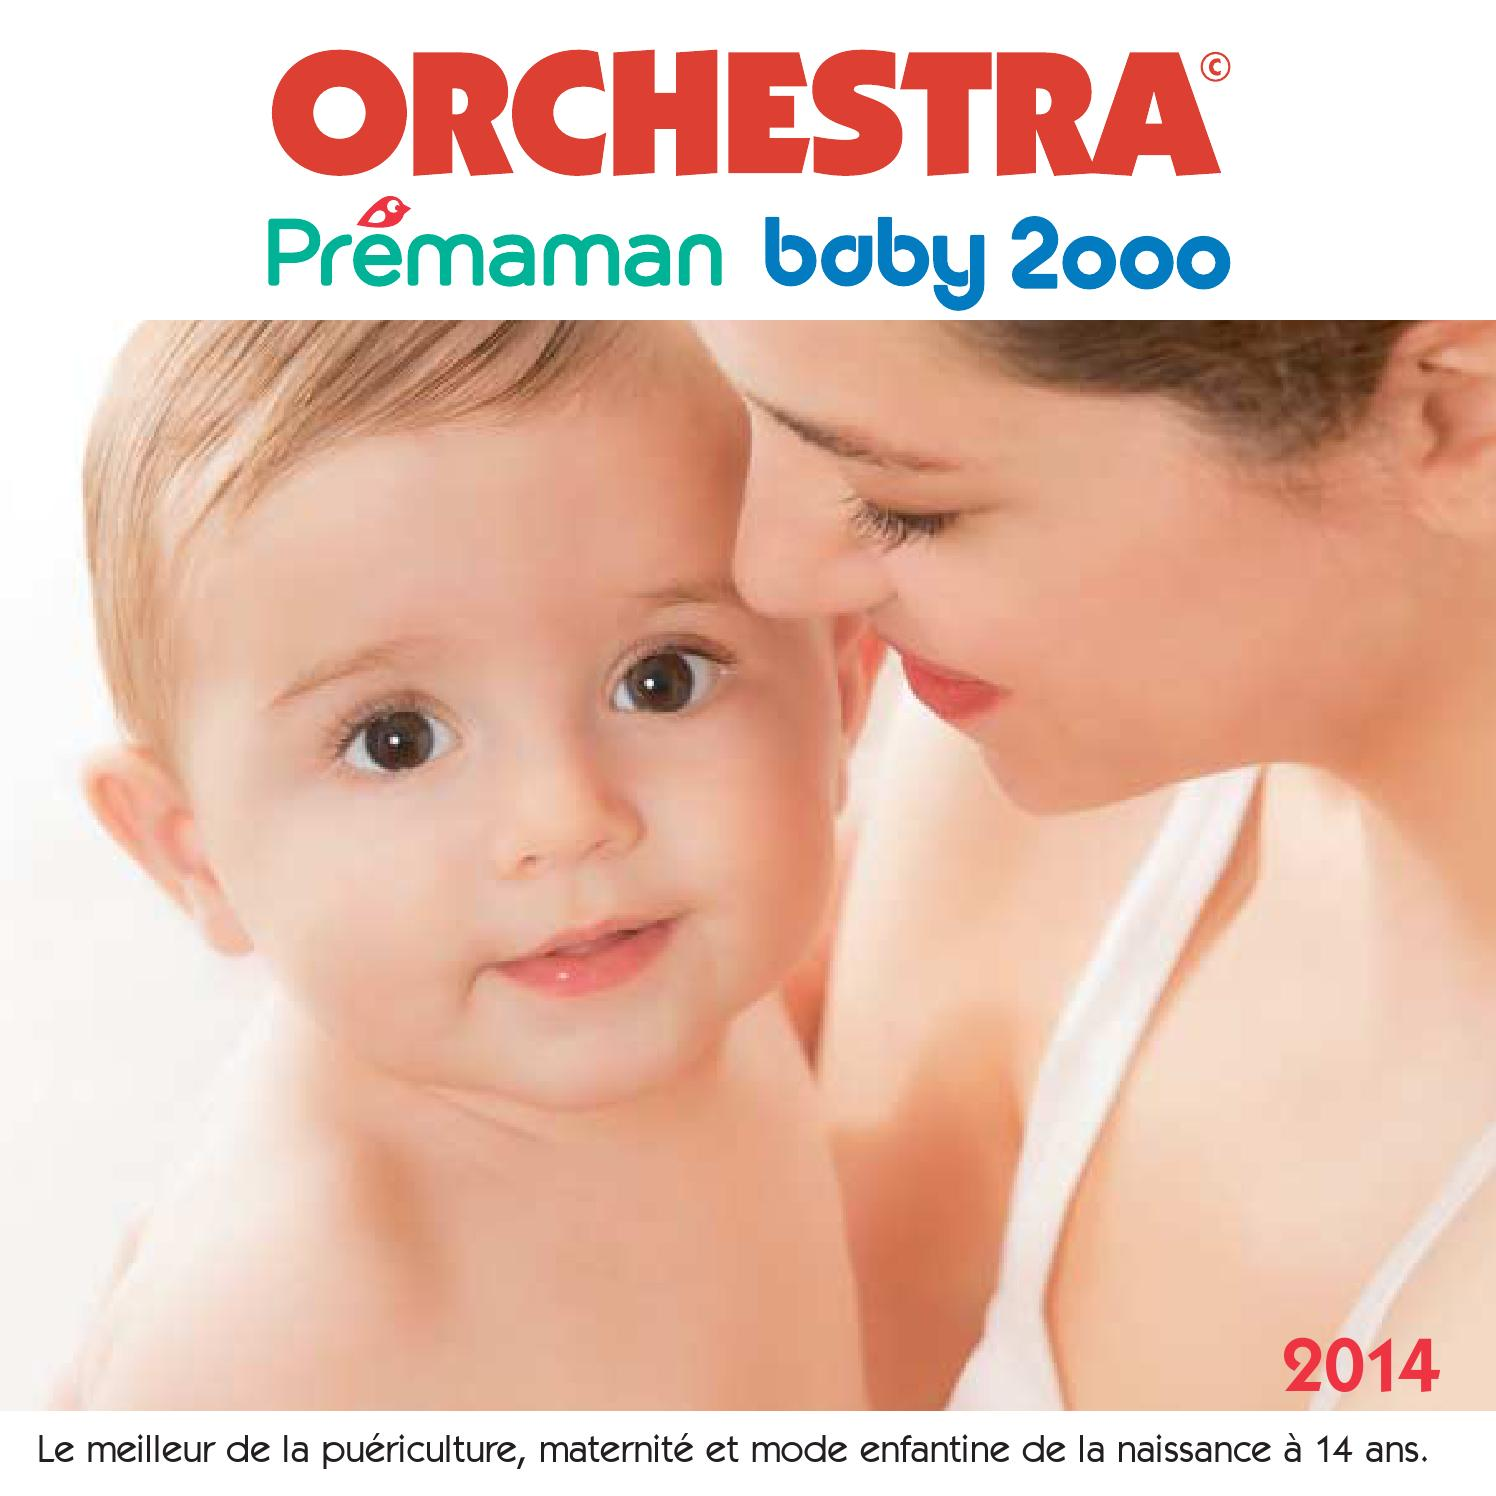 151cb5c7db6b Orchestra - Prémaman Baby 2000 by zmirov communication - issuu